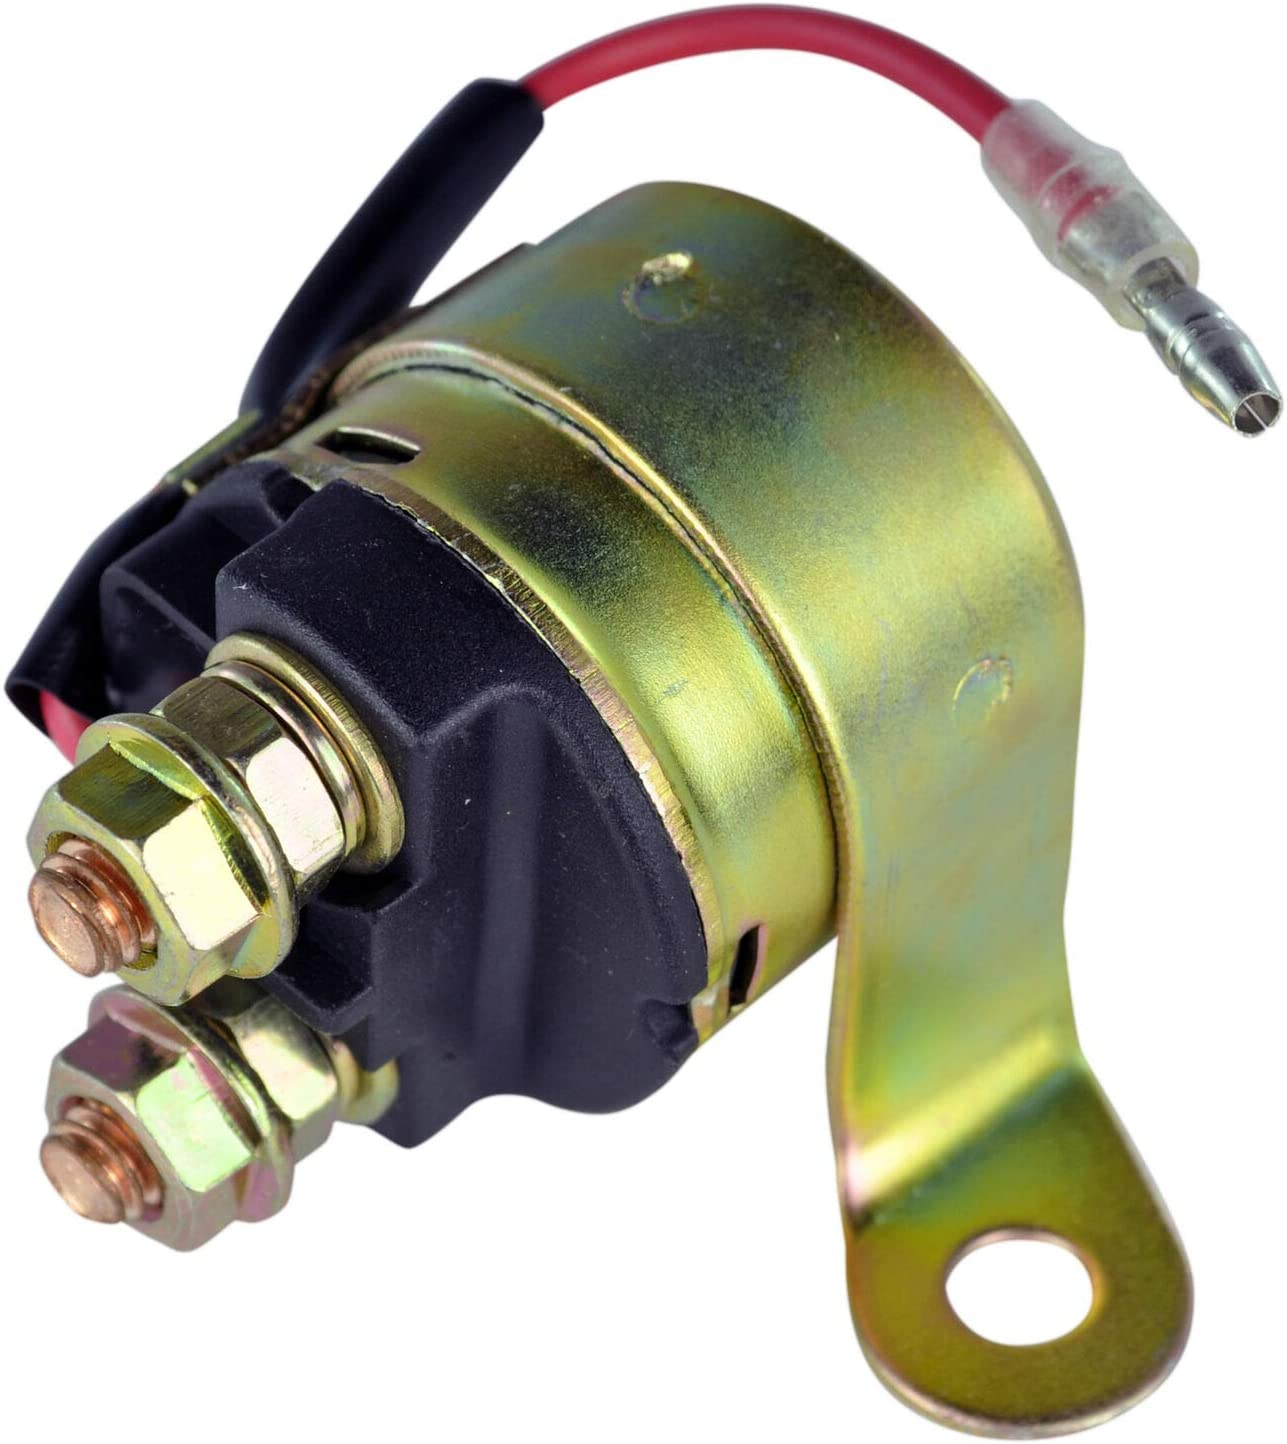 Starter Relay Solenoid Replacement for 2x4 Scrambler Polaris Special Max 65% OFF sale item 500